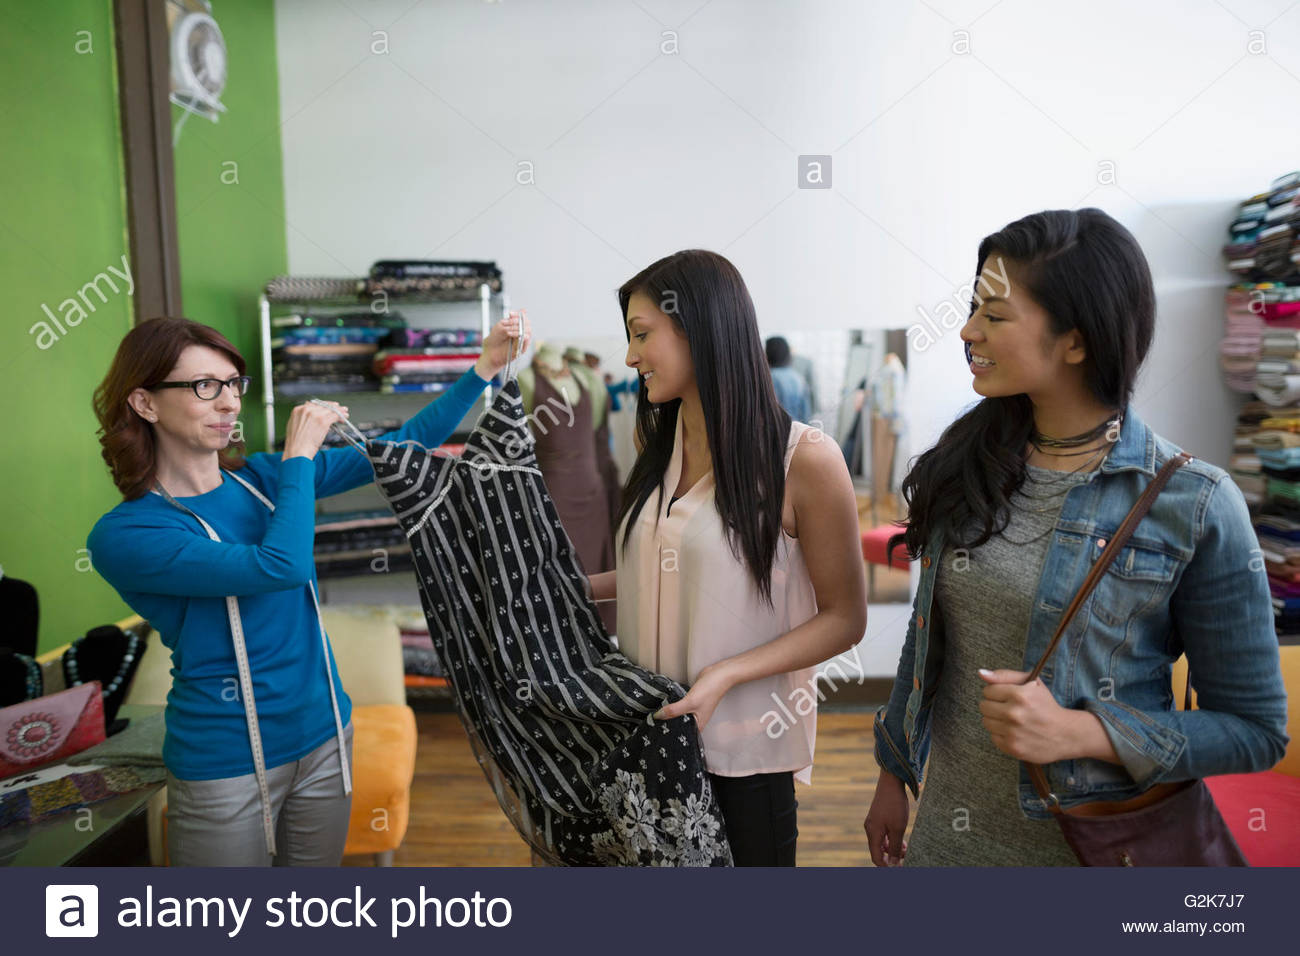 Dressmaker showing women dress - Stock Image